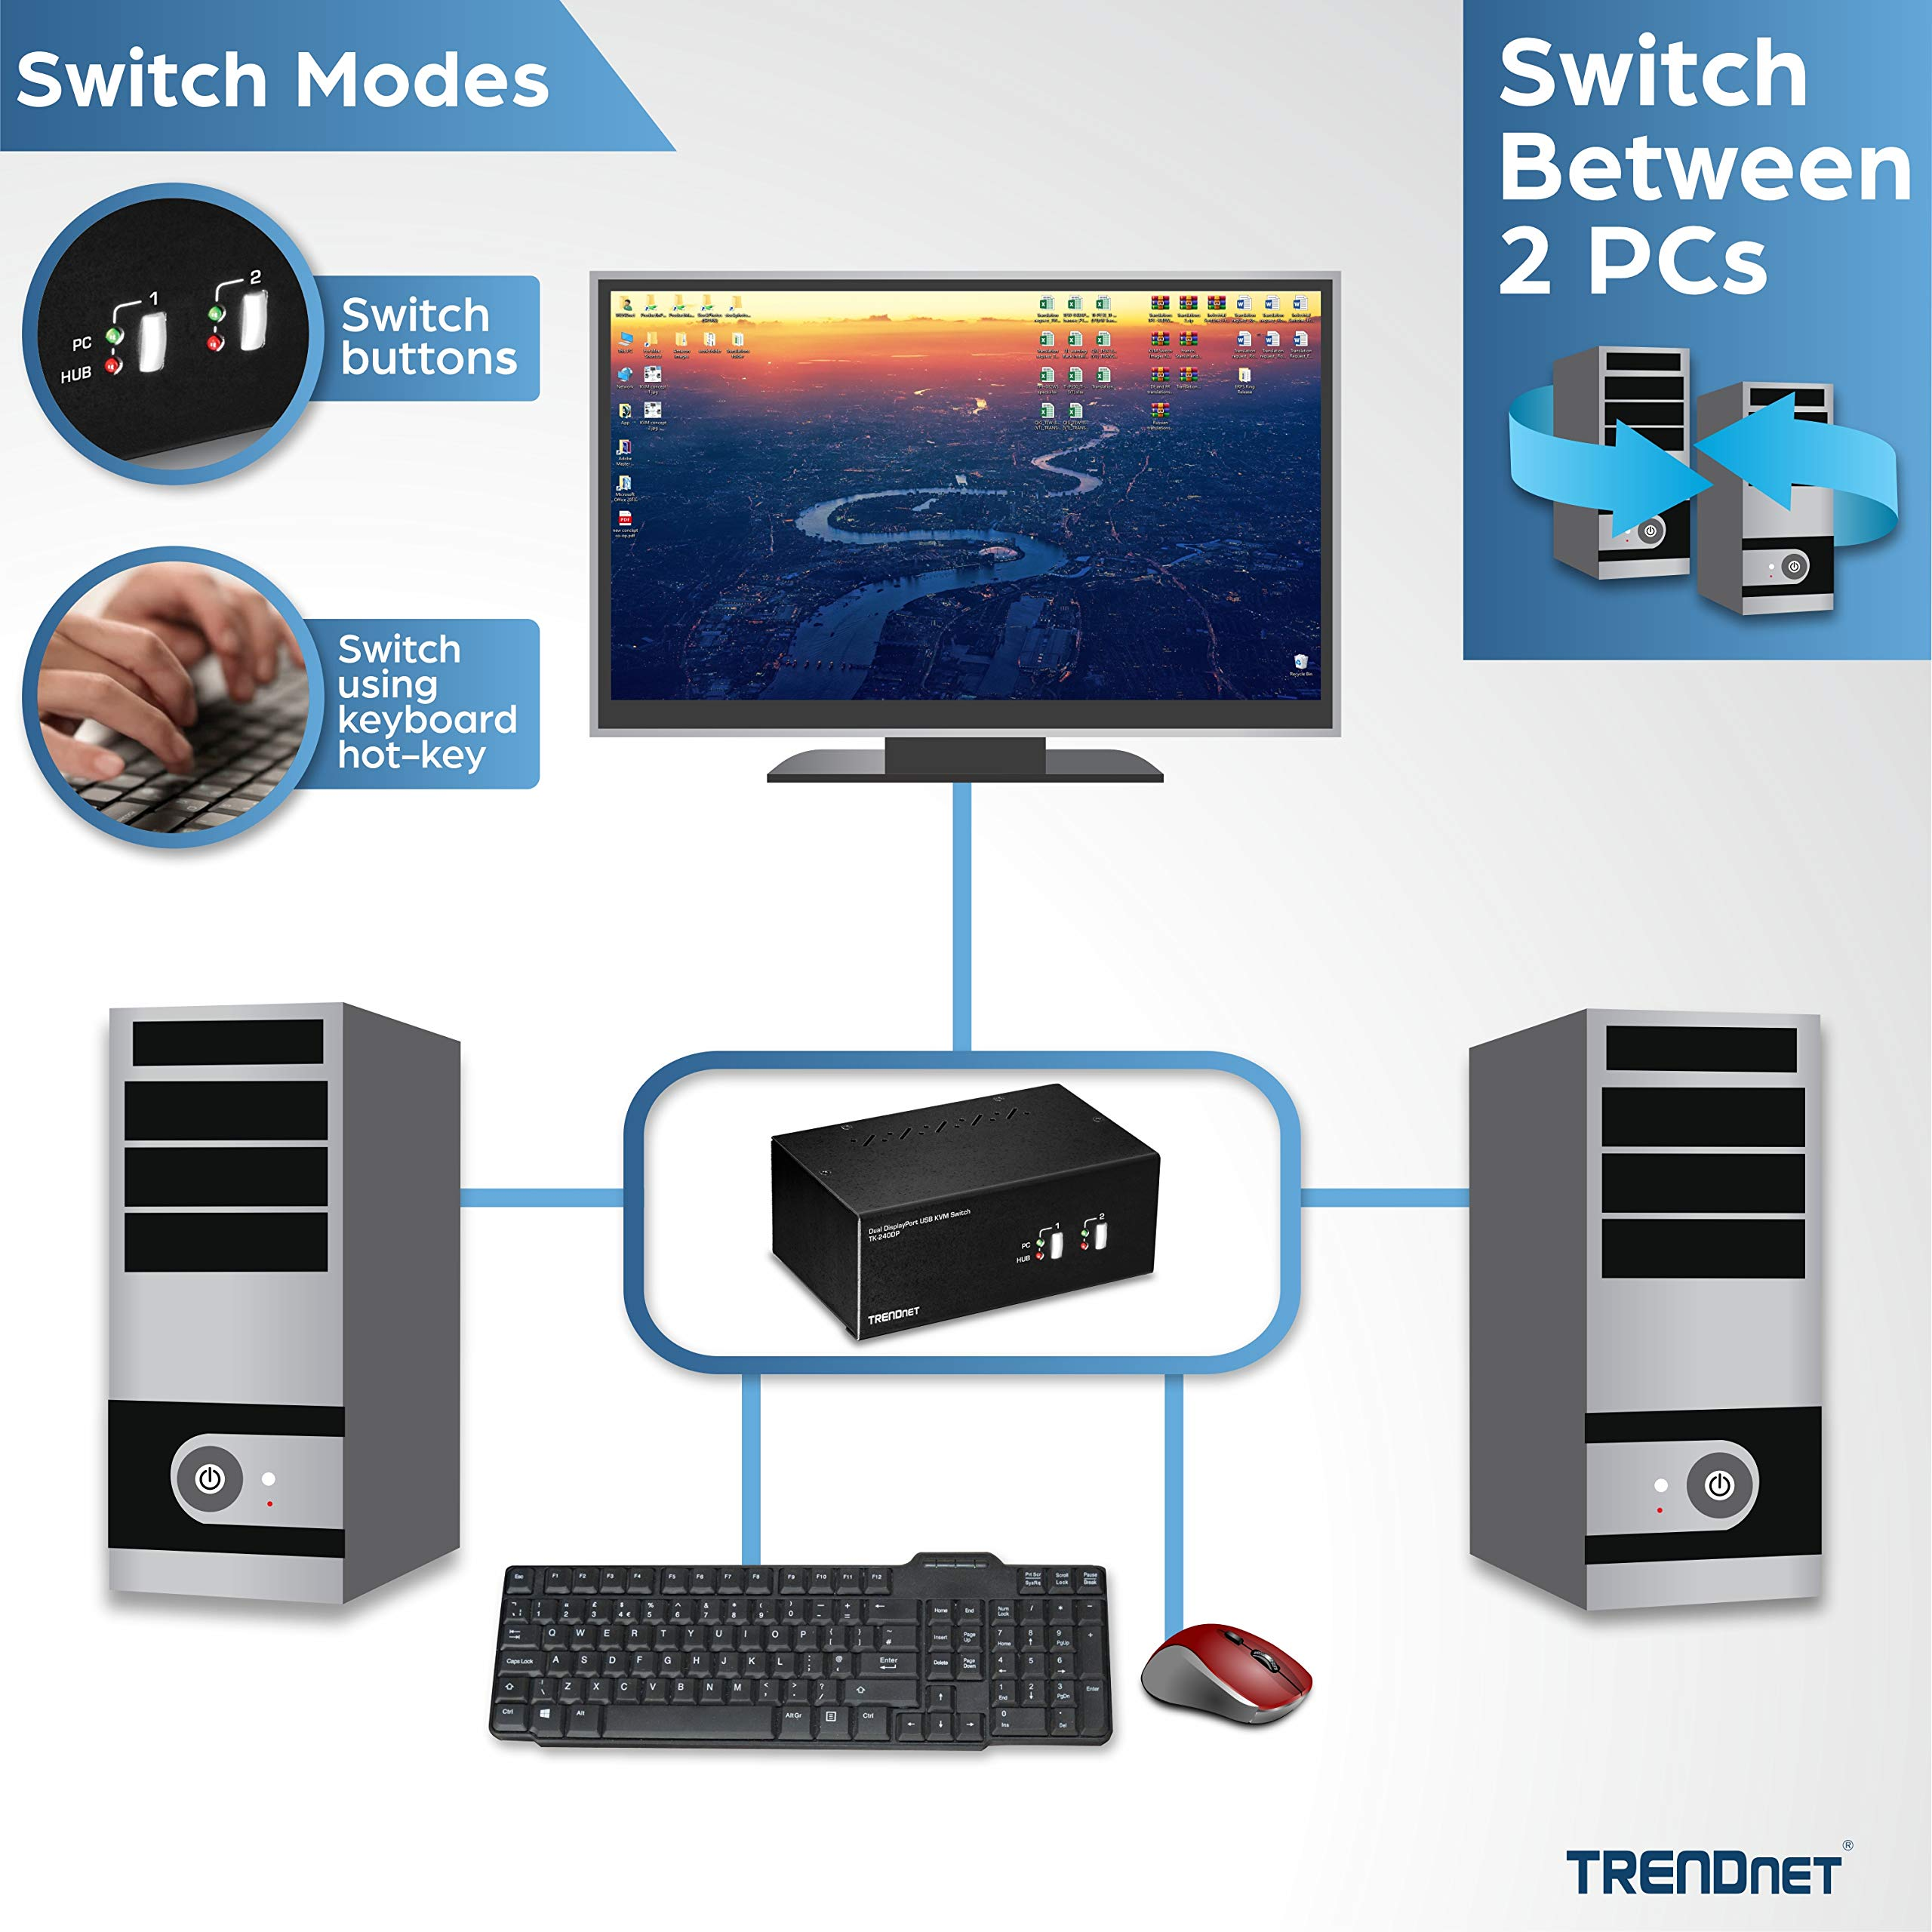 TRENDnet 2-Port Dual Monitor DisplayPort KVM Switch with Audio, 2-Port USB 2.0 Hub, 4K UHD Resolutions Up to 3840 X 2160, TK-240DP by TRENDnet (Image #6)